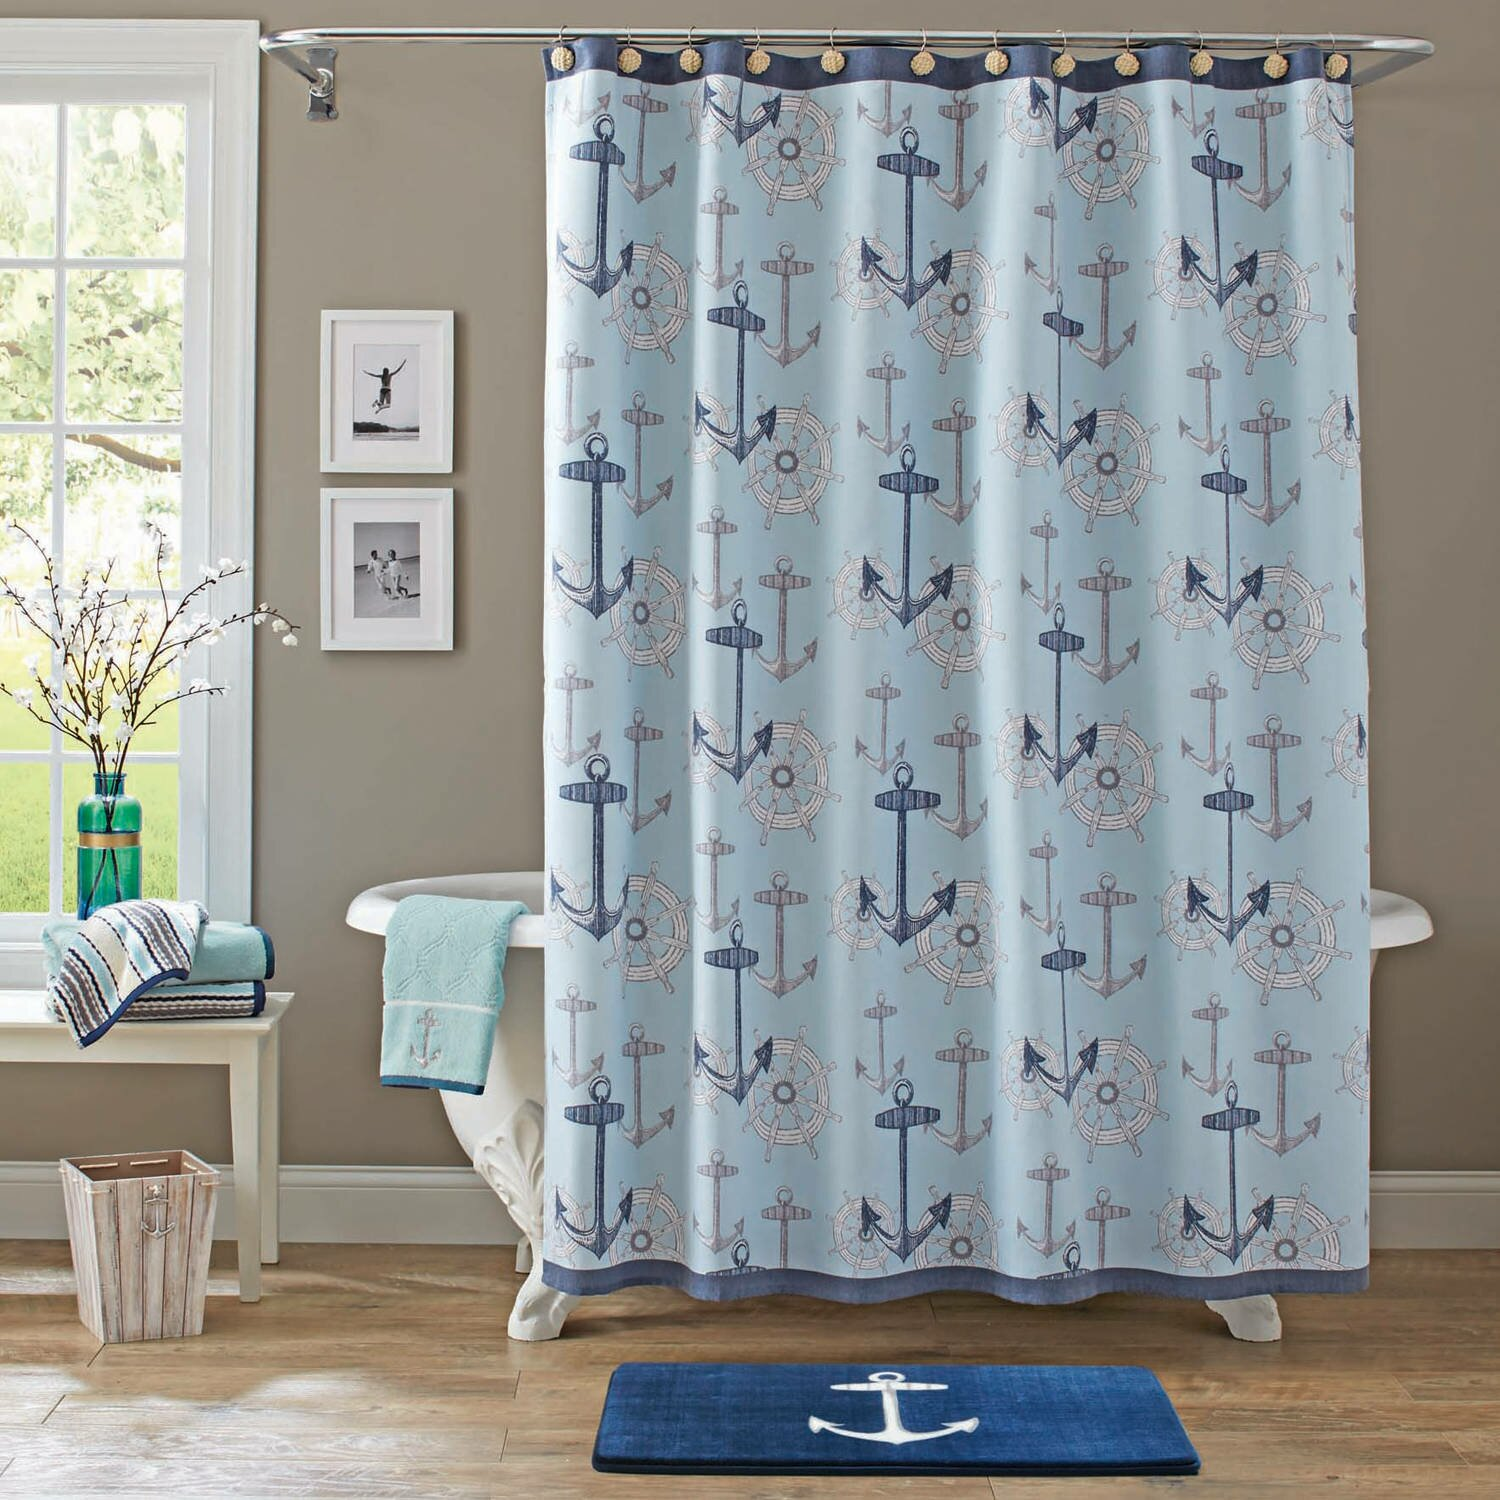 Walmart Shower Curtain | Navy Fabric Shower Curtain | Mainstays Shower  Curtain